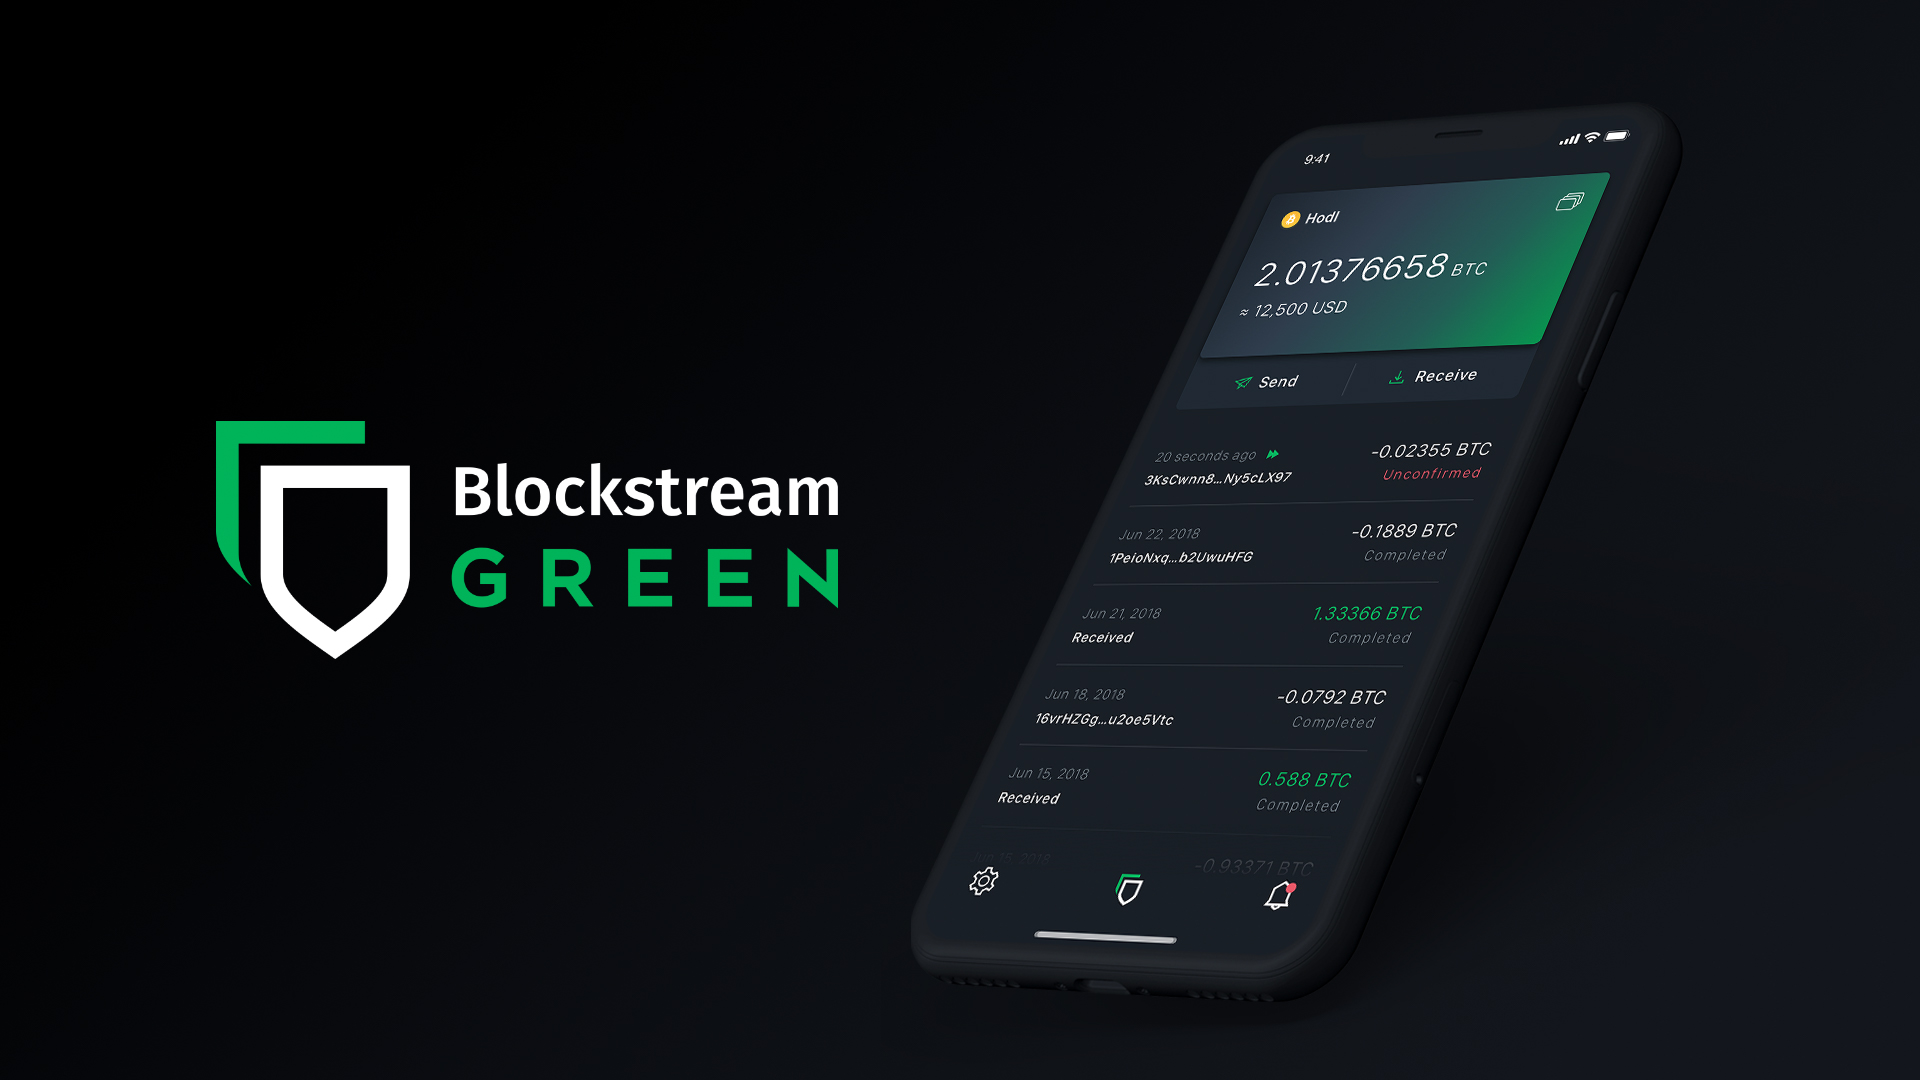 Blockstream - The All-New Blockstream Green Wallet